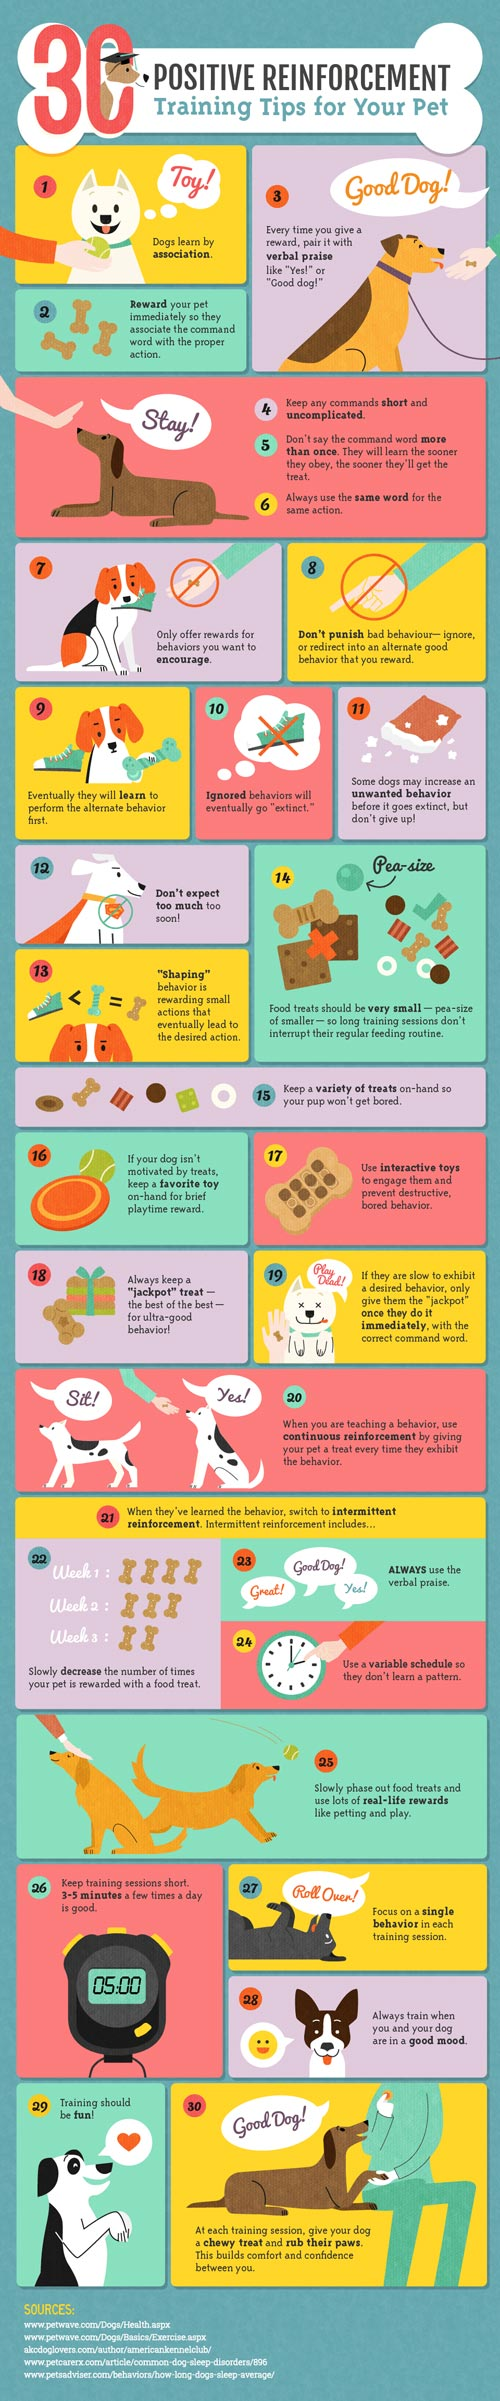 Positive Reinforcement Infographic